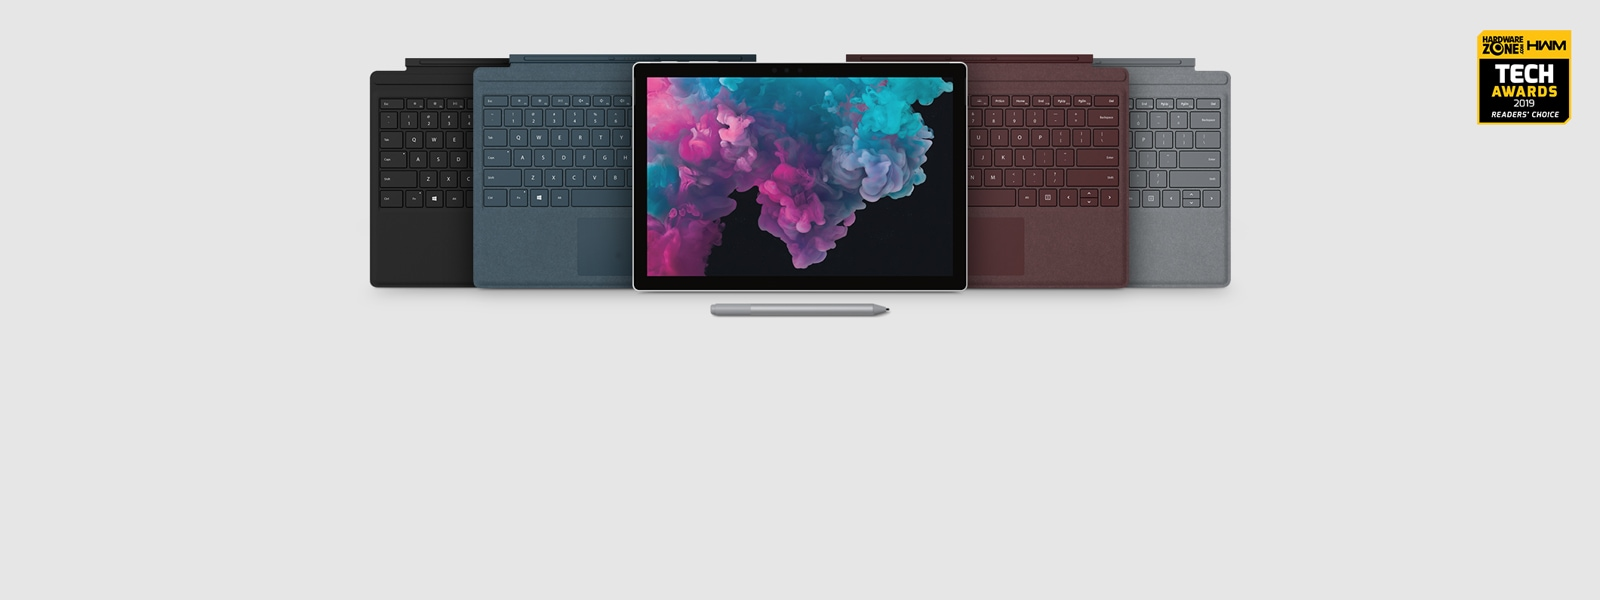 Surface Pro 6 and Surface accessories. HWZ award on display